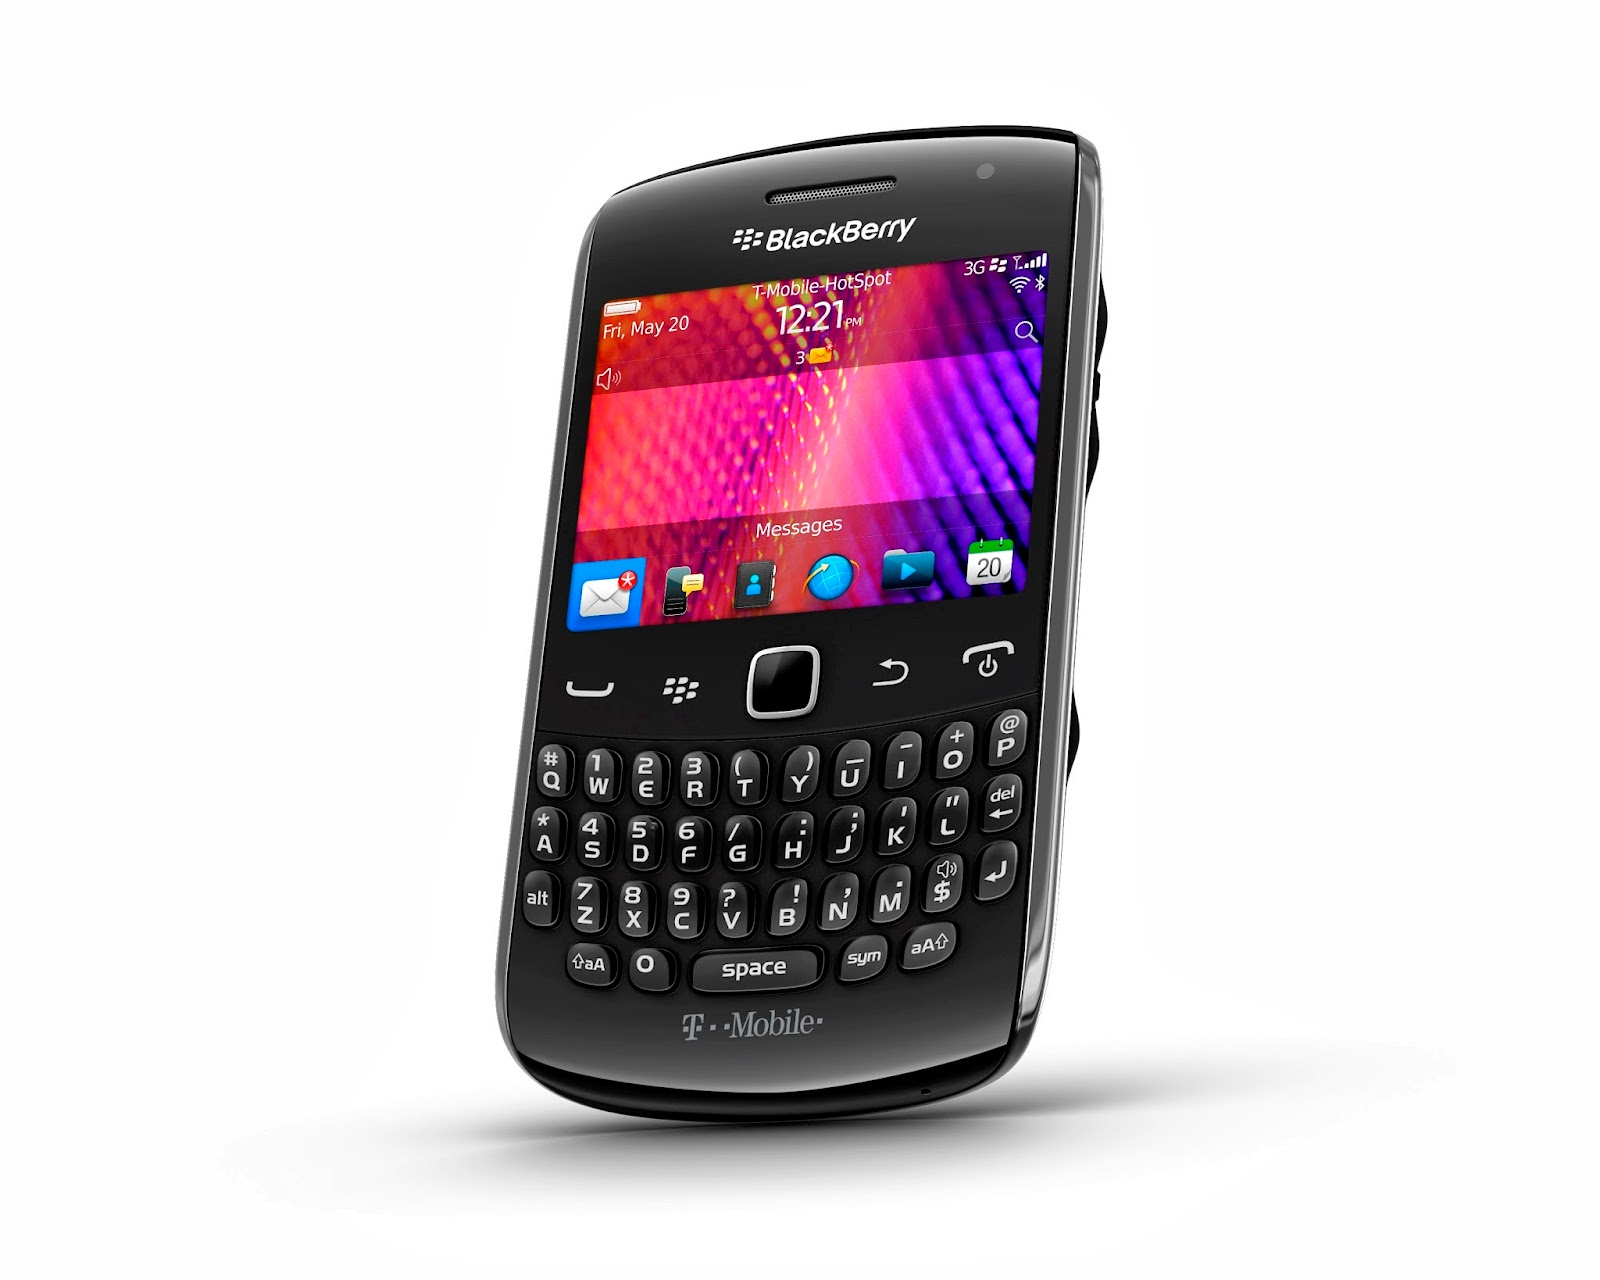 Camera Android Feature Phone my thoughts on technology and jamaica how to unlock any feature android smartphones are straightforward just try the lock screen pattern until it gives you a op